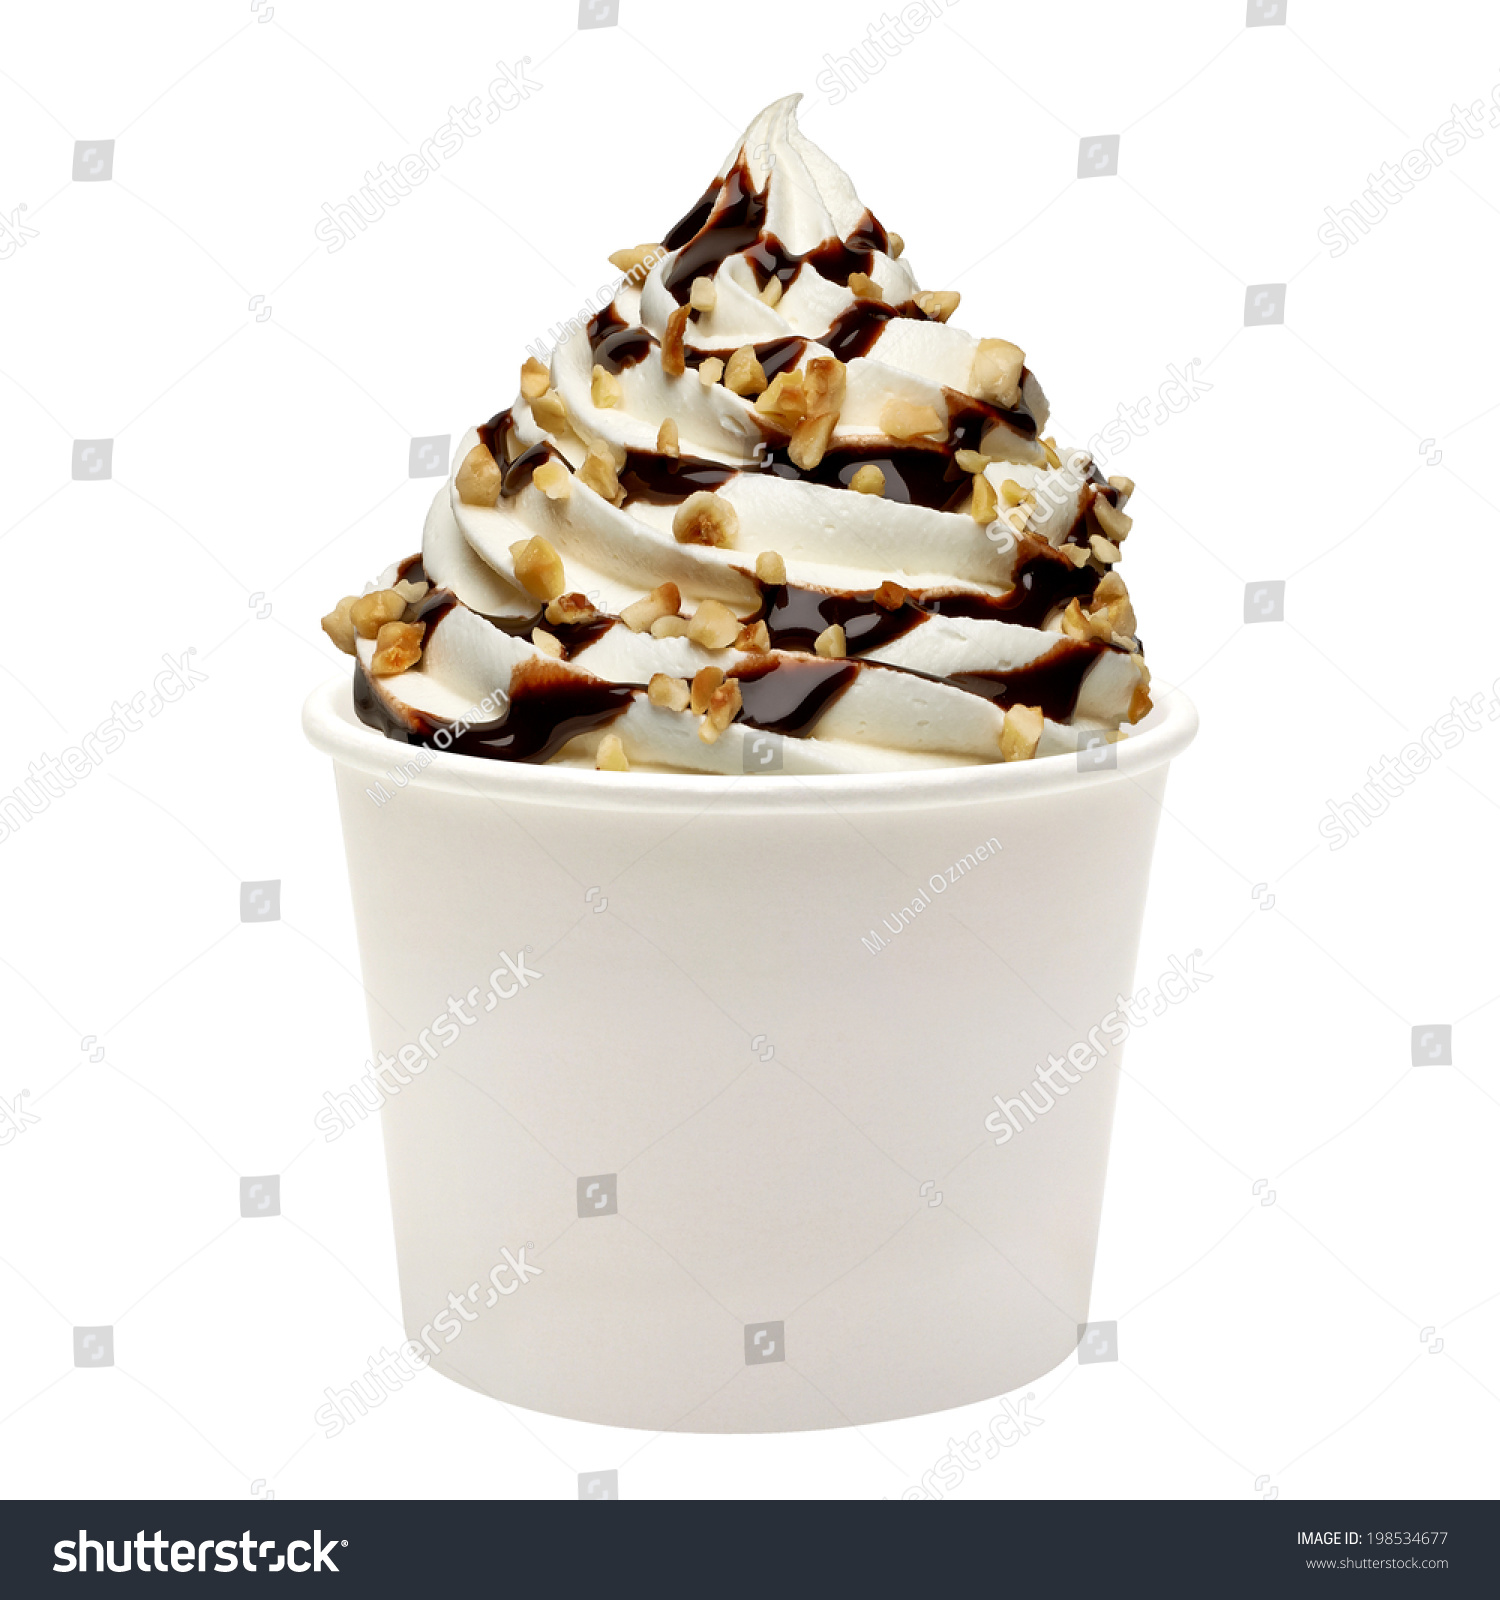 Soft ice cream with chocolate sauce and hazelnuts in paper cup on ...